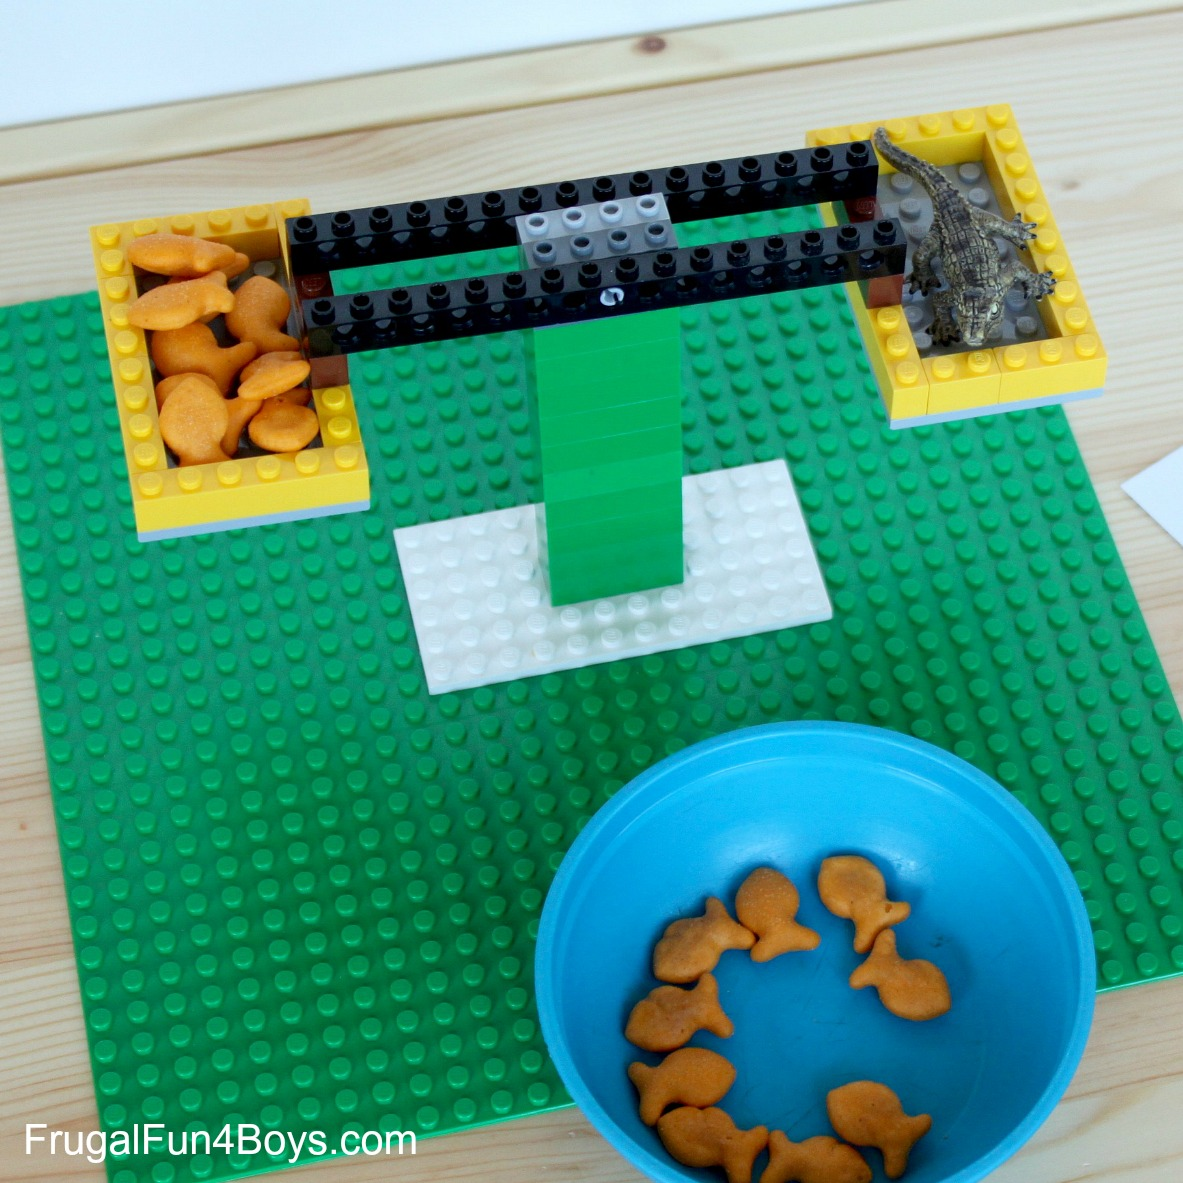 Build a LEGO Balance - Math Activity for Kids